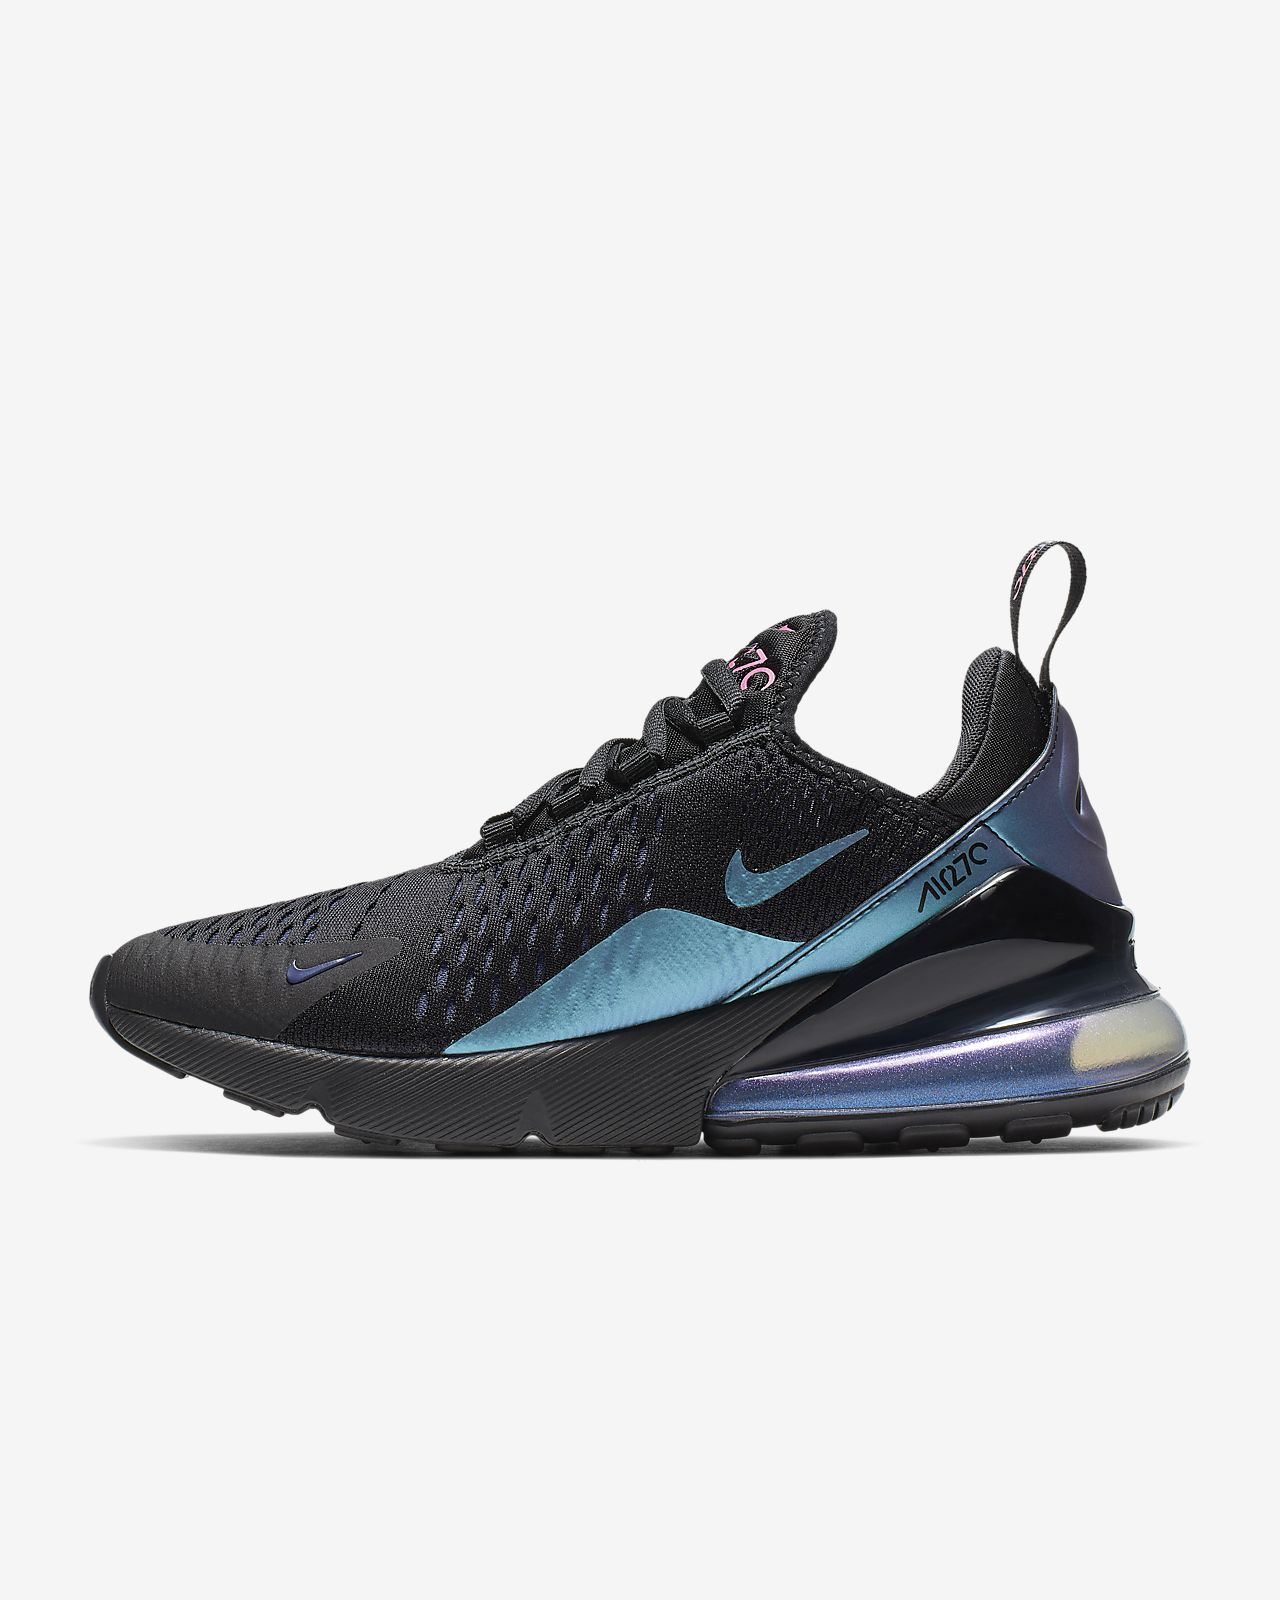 new style fe687 4aea5 Buty damskie Nike Air Max 270